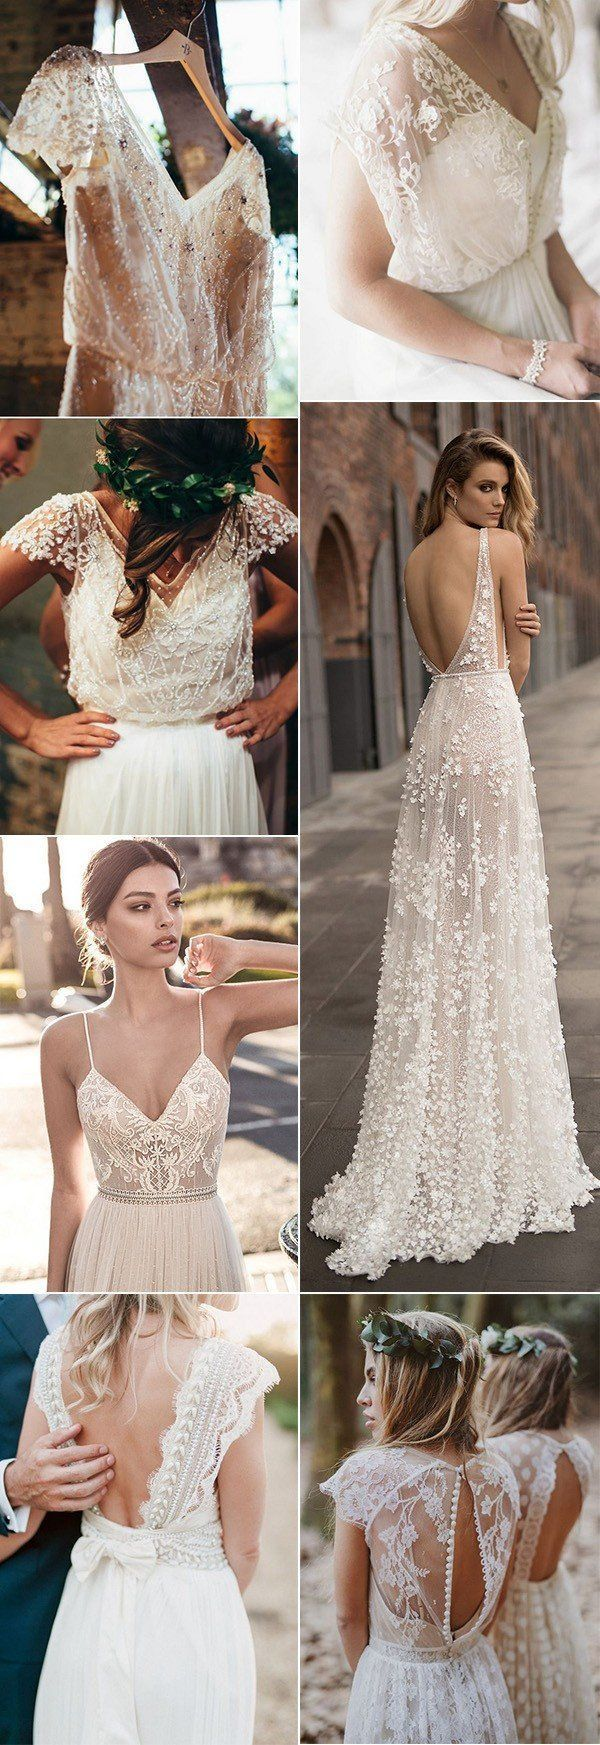 1970s wedding dress  Boho wedding dresses blur the line between traditional and defined